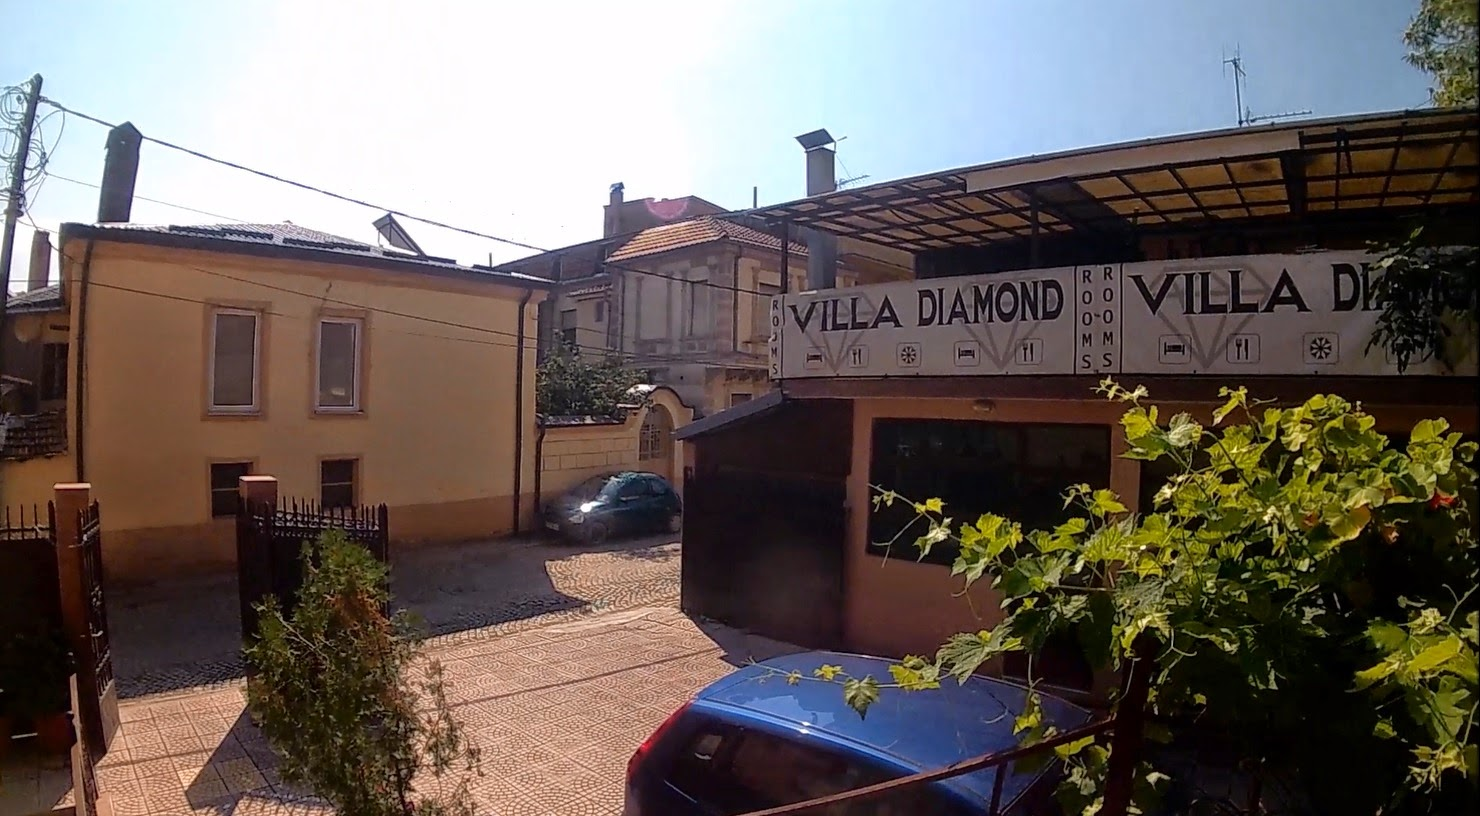 Villa Diamond. Bitola. Macedonia